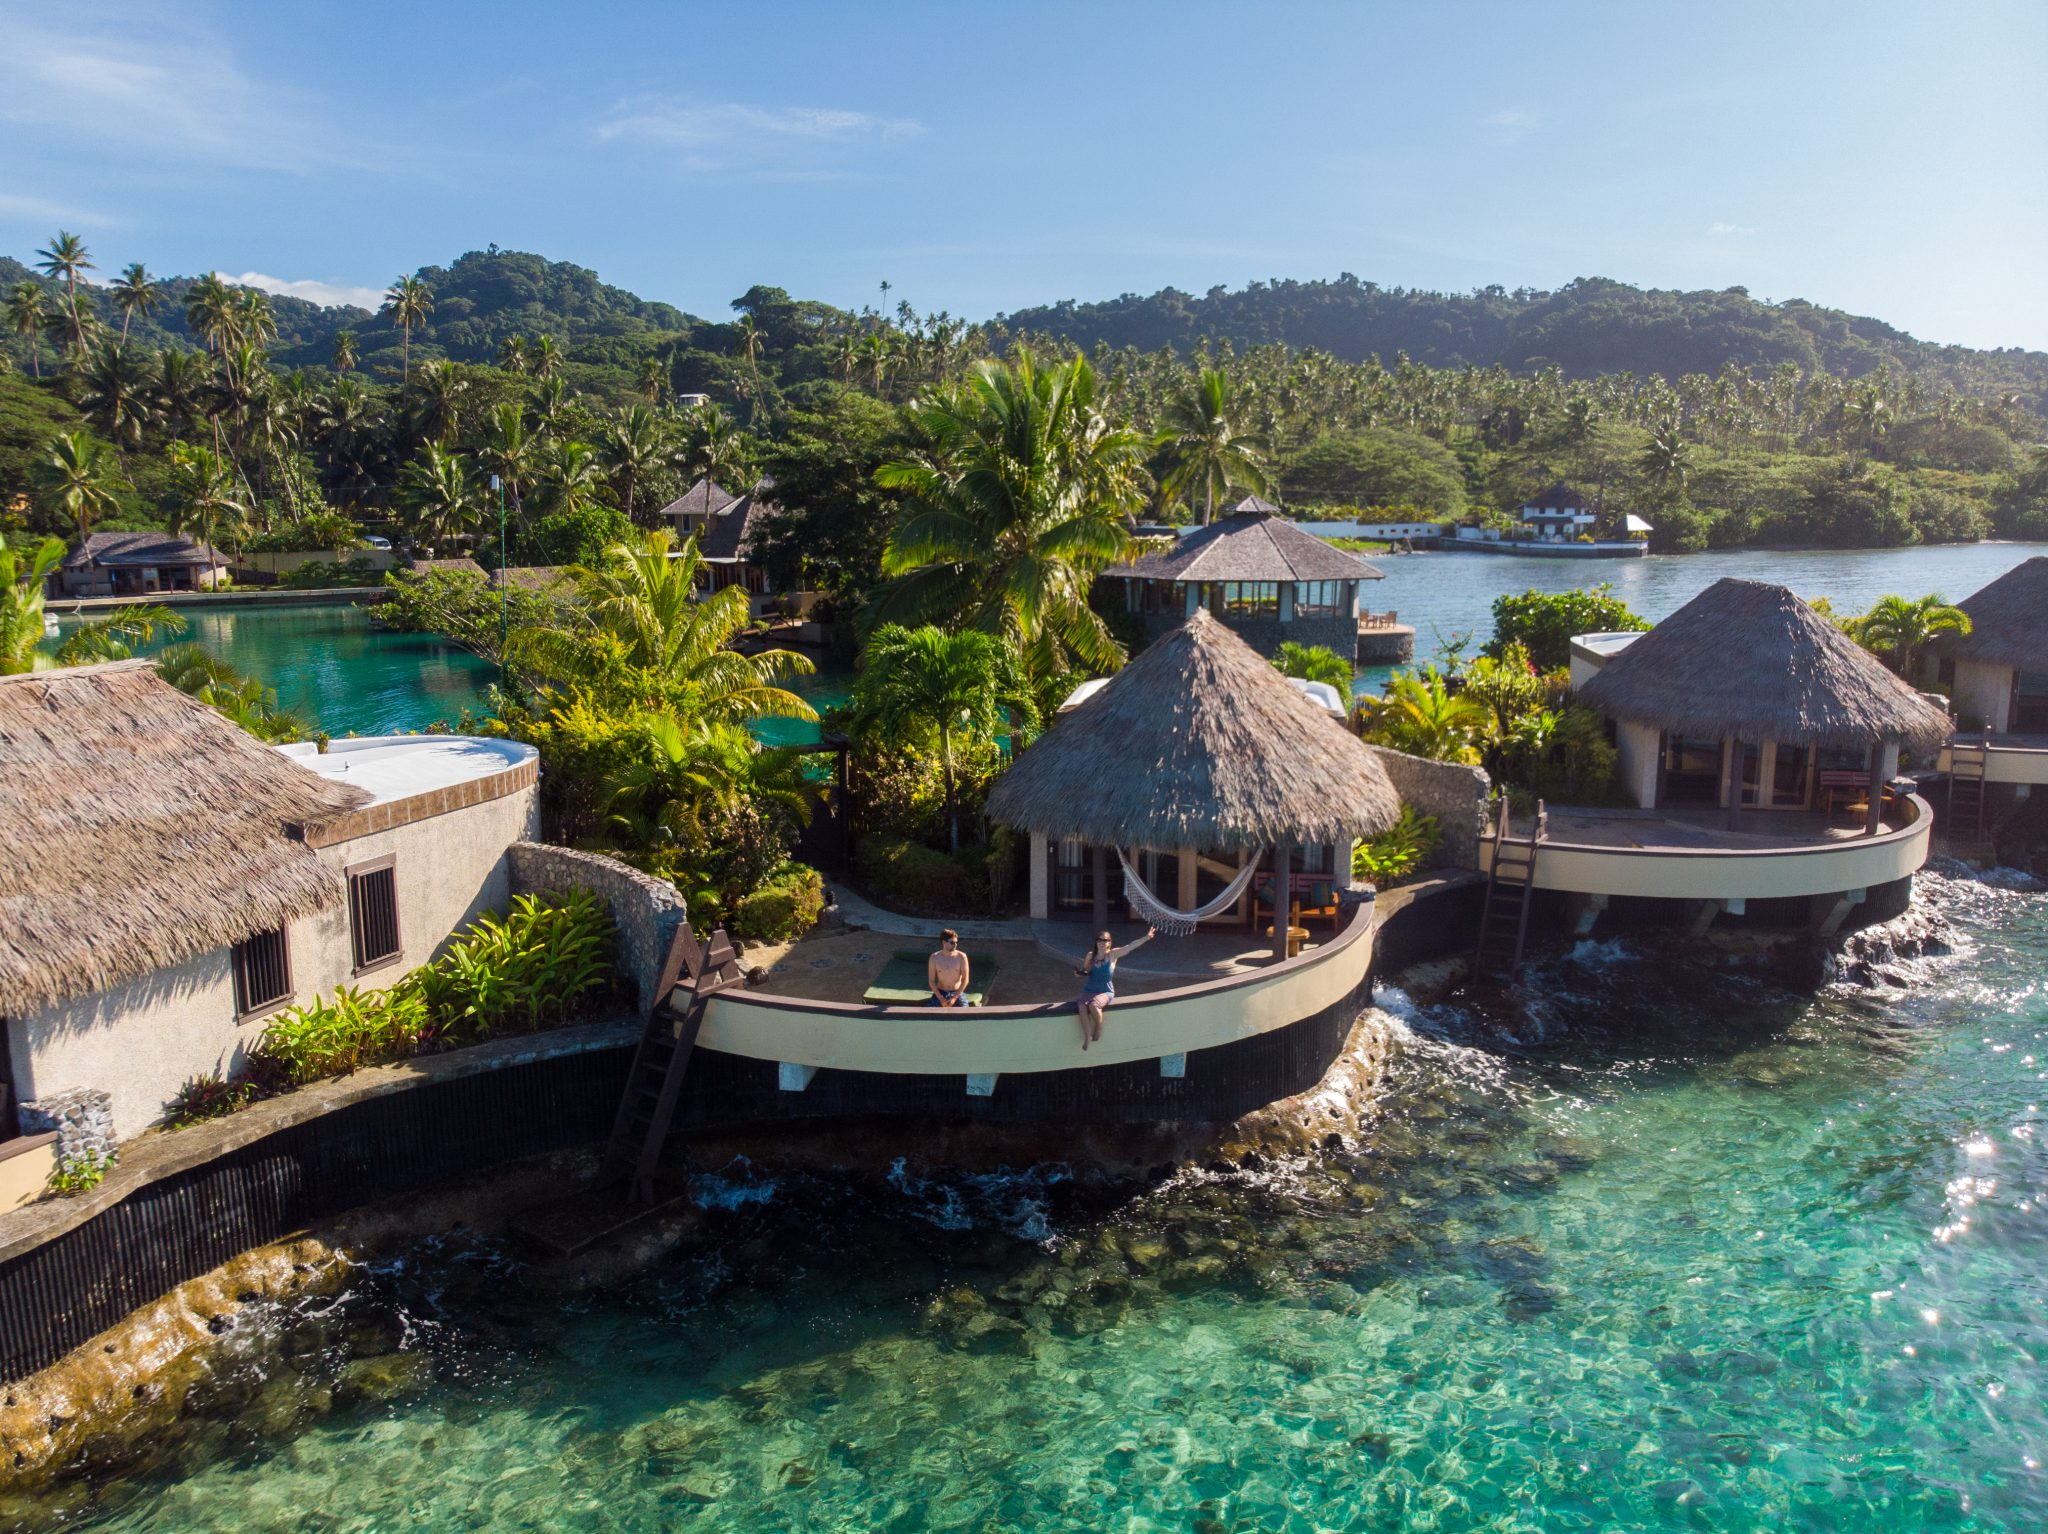 Koro Sun Resort and Spa, Fiji